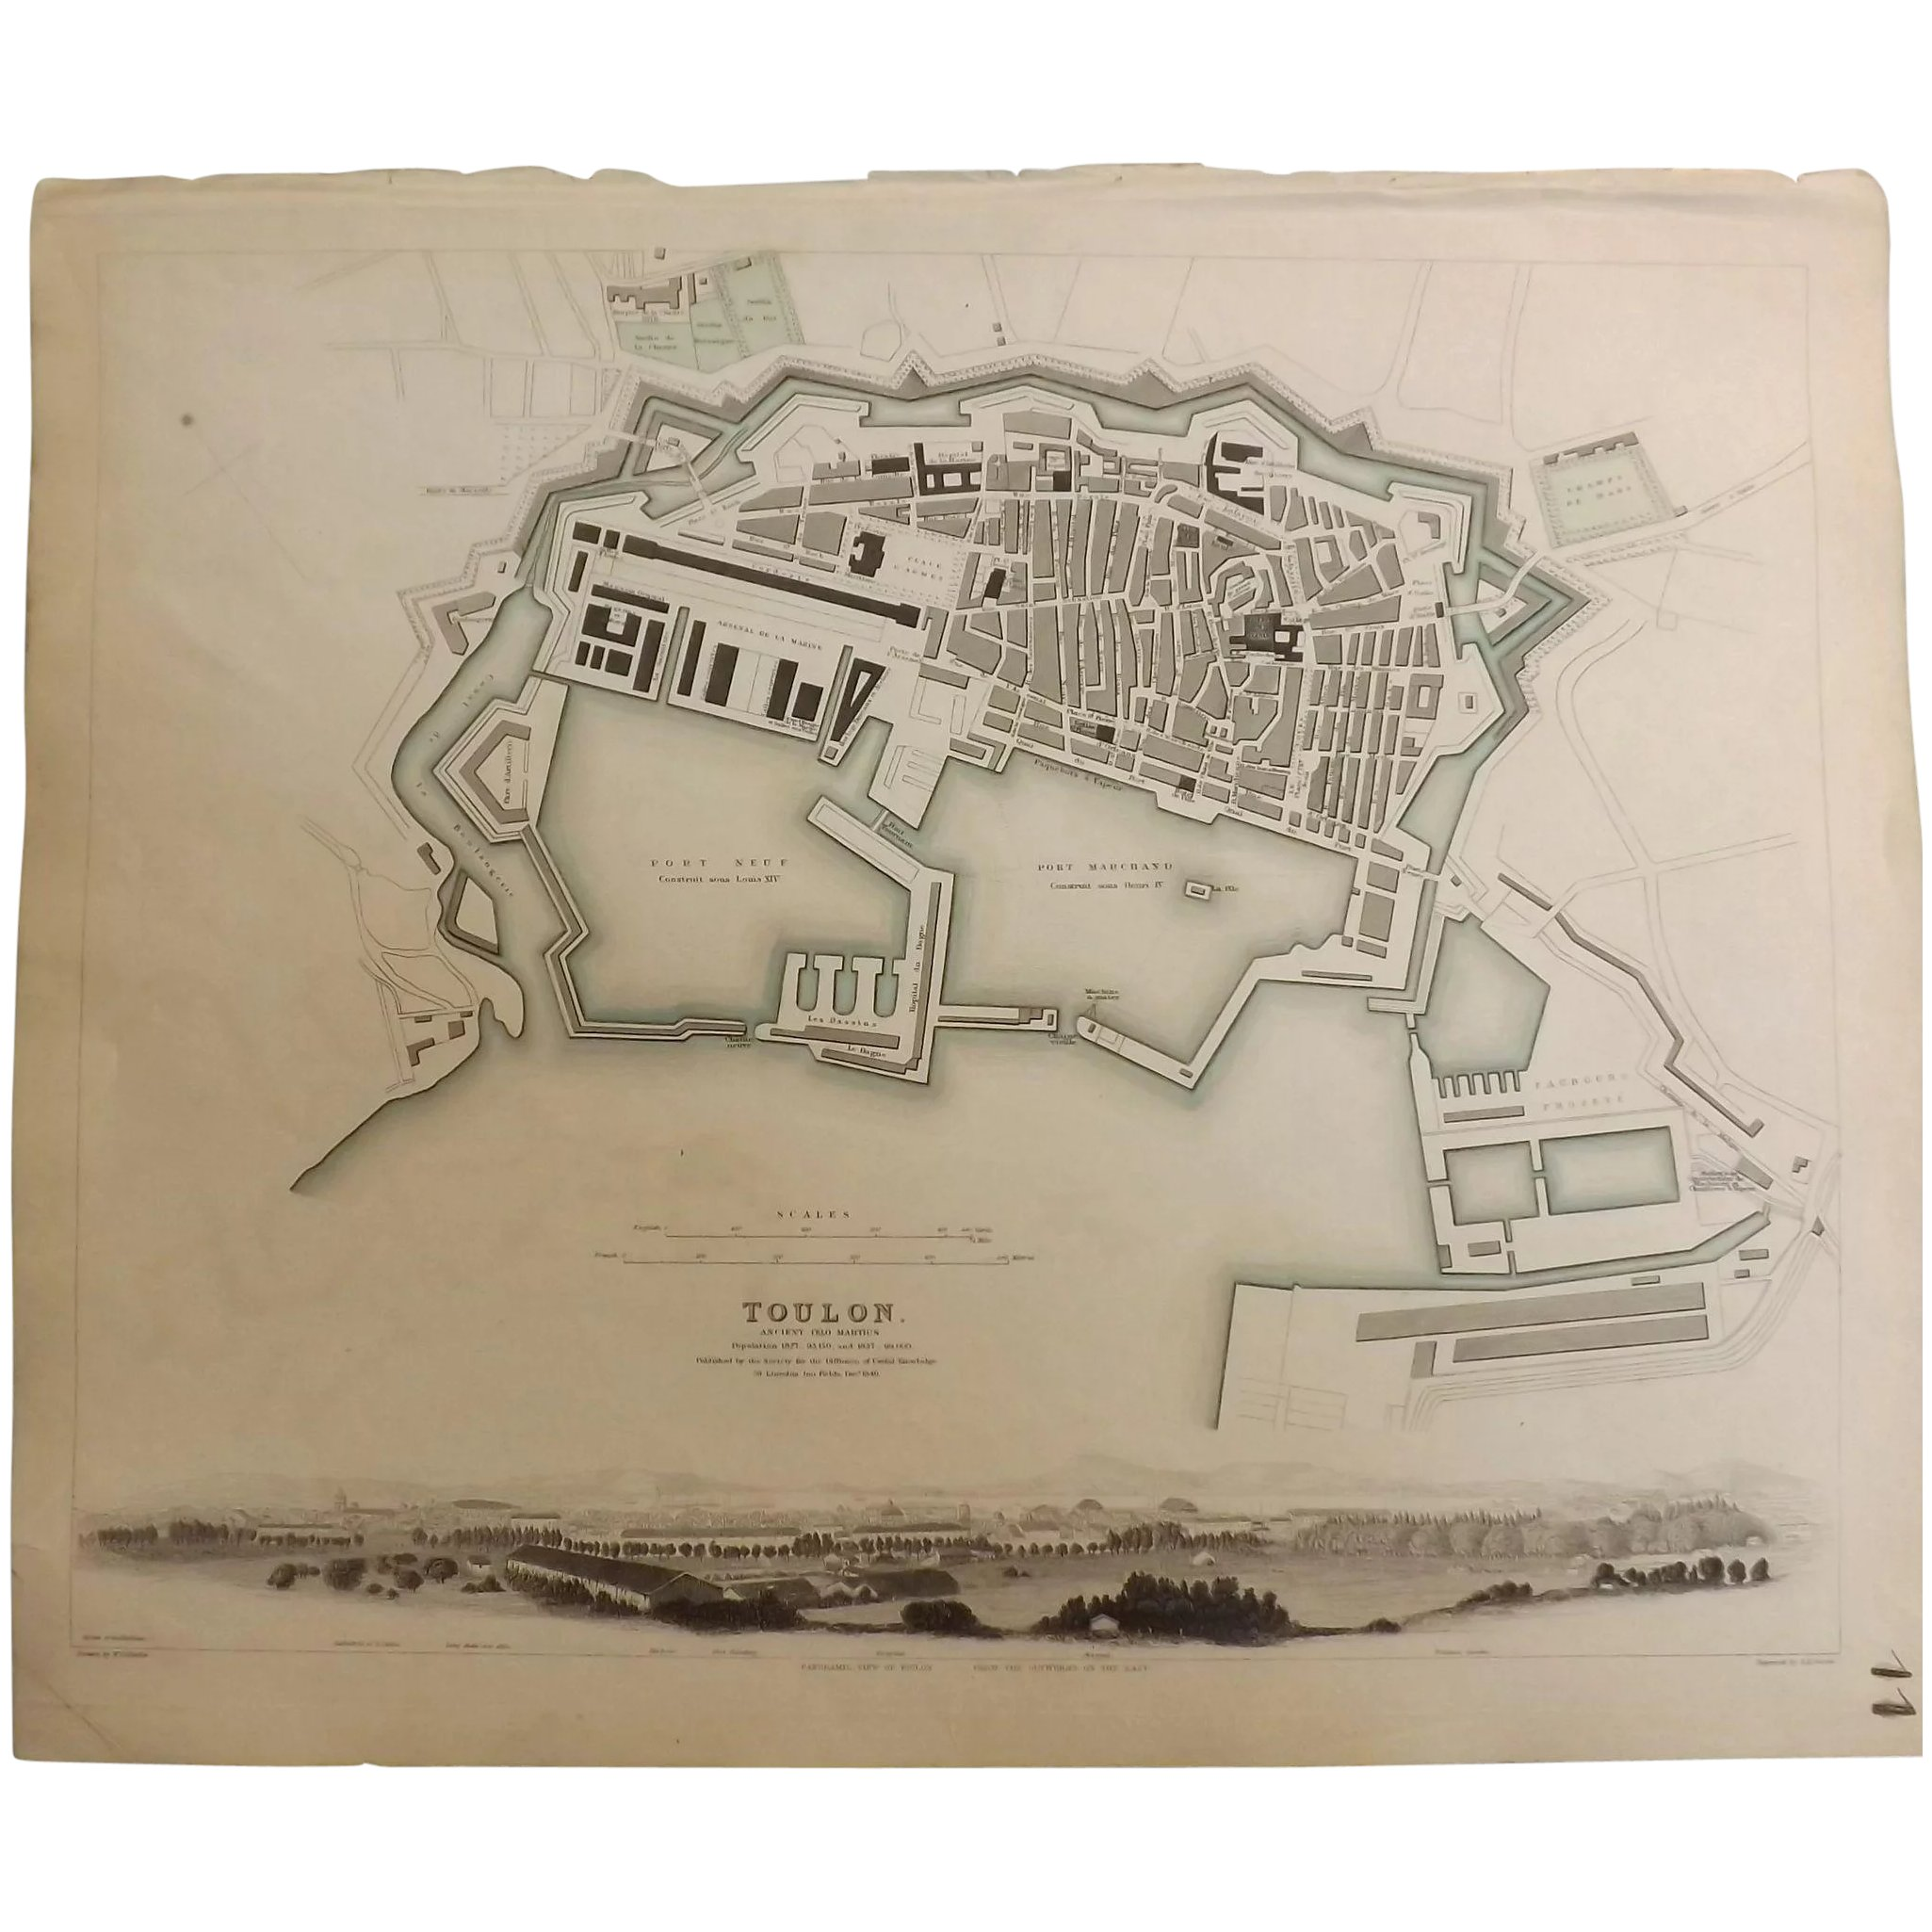 An Original Atlas Map of TOULON circa 1840 Published By